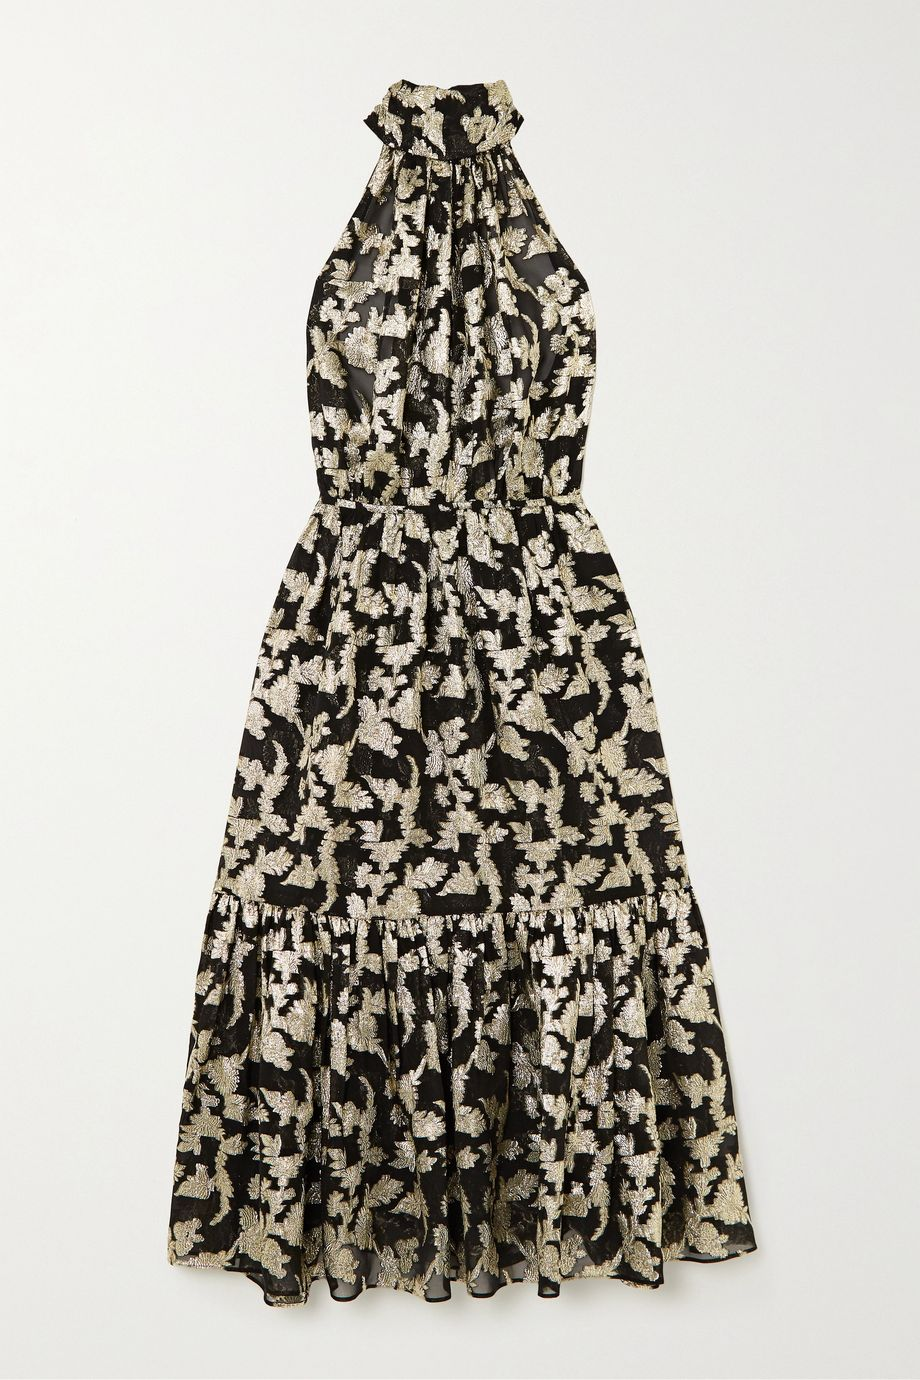 SAINT LAURENT Metallic floral silk and Lurex-blend chiffon halterneck dress